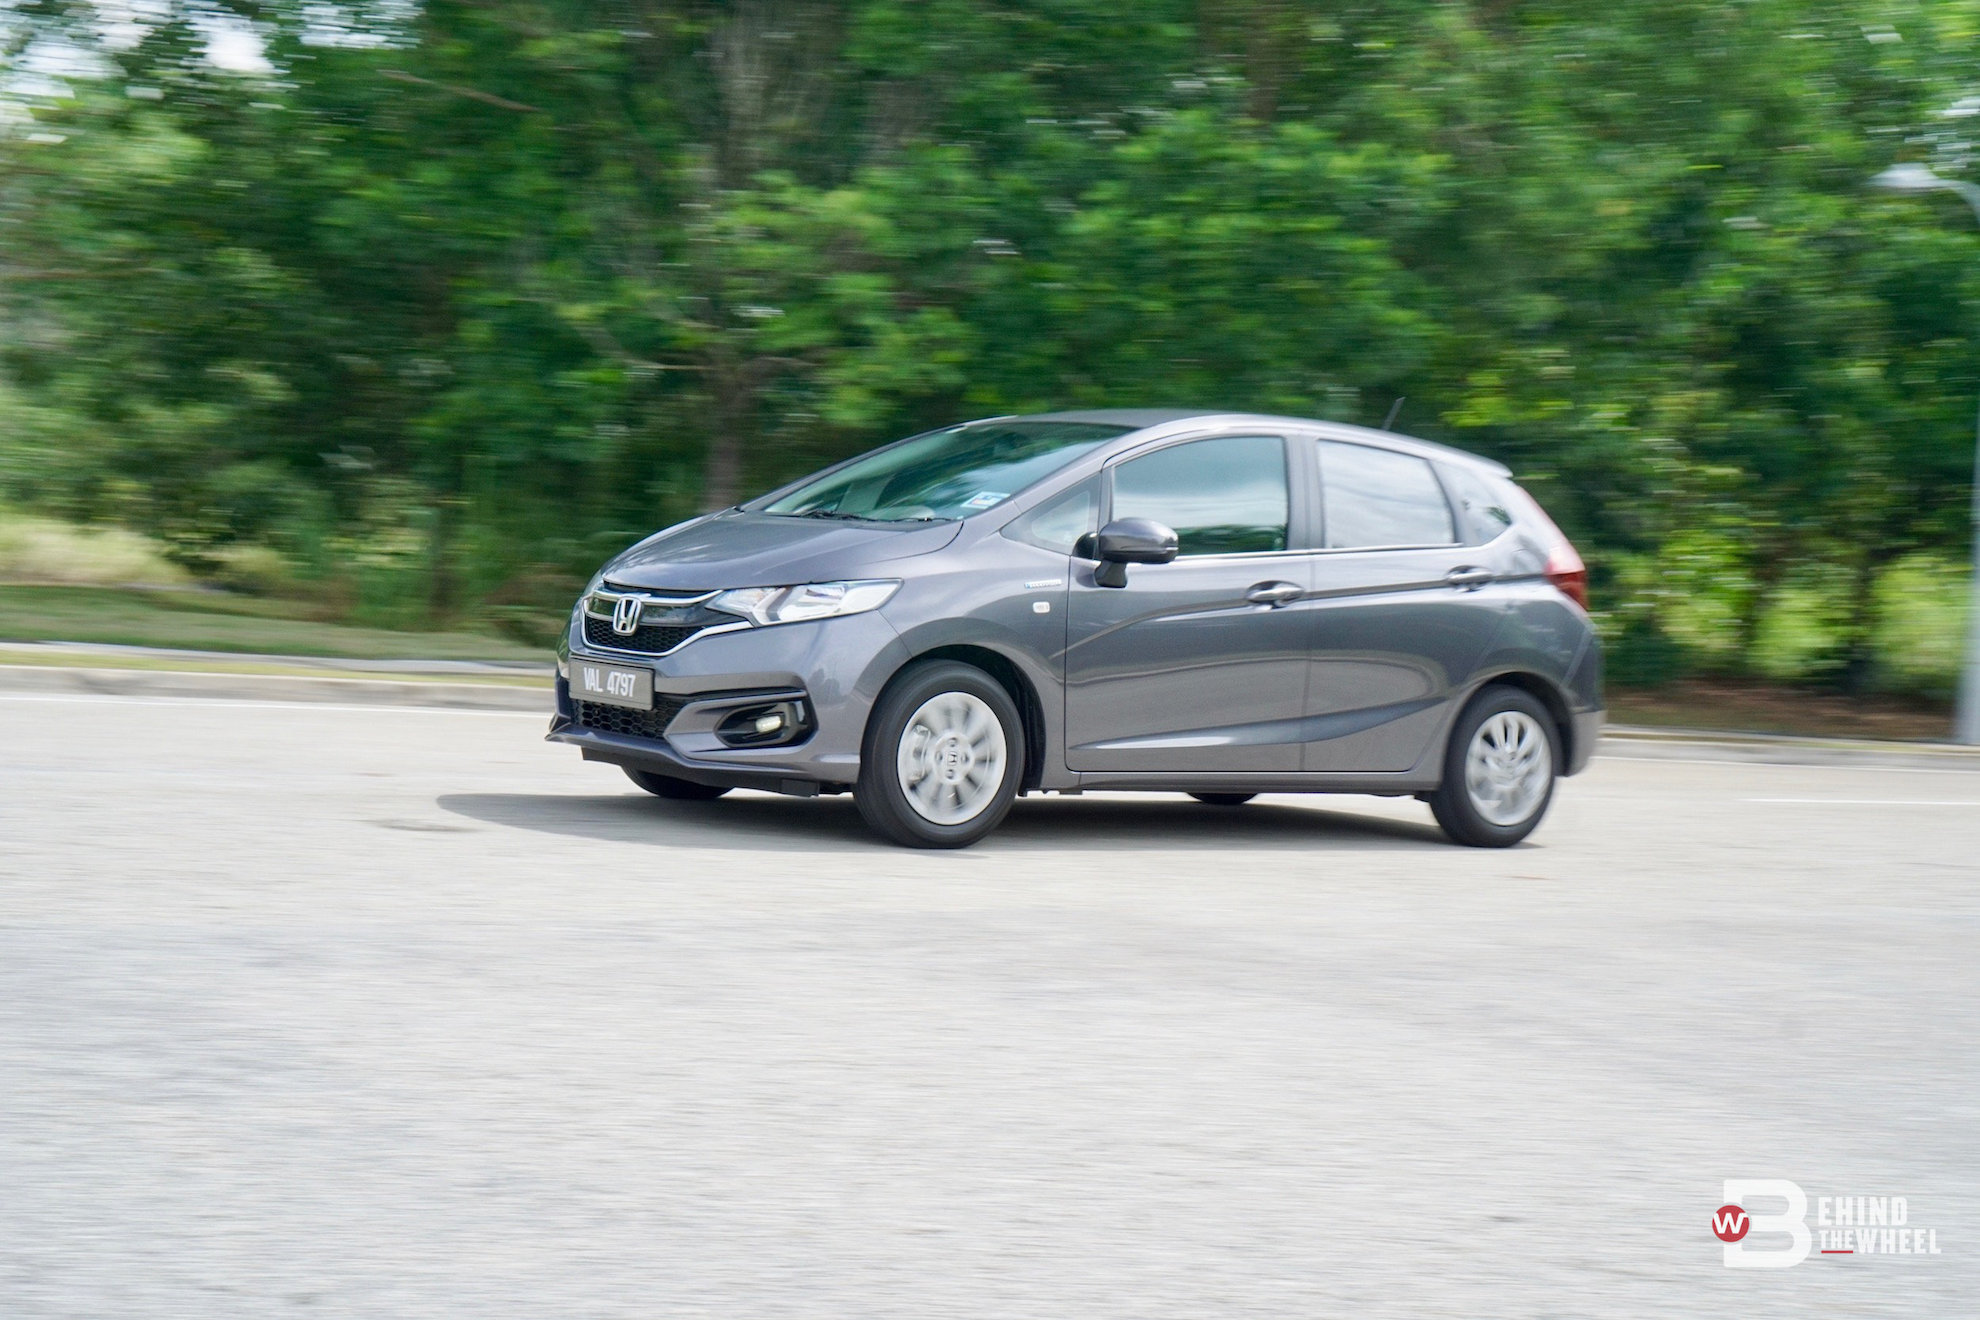 honda jazz hybrid review charged up for a better economy